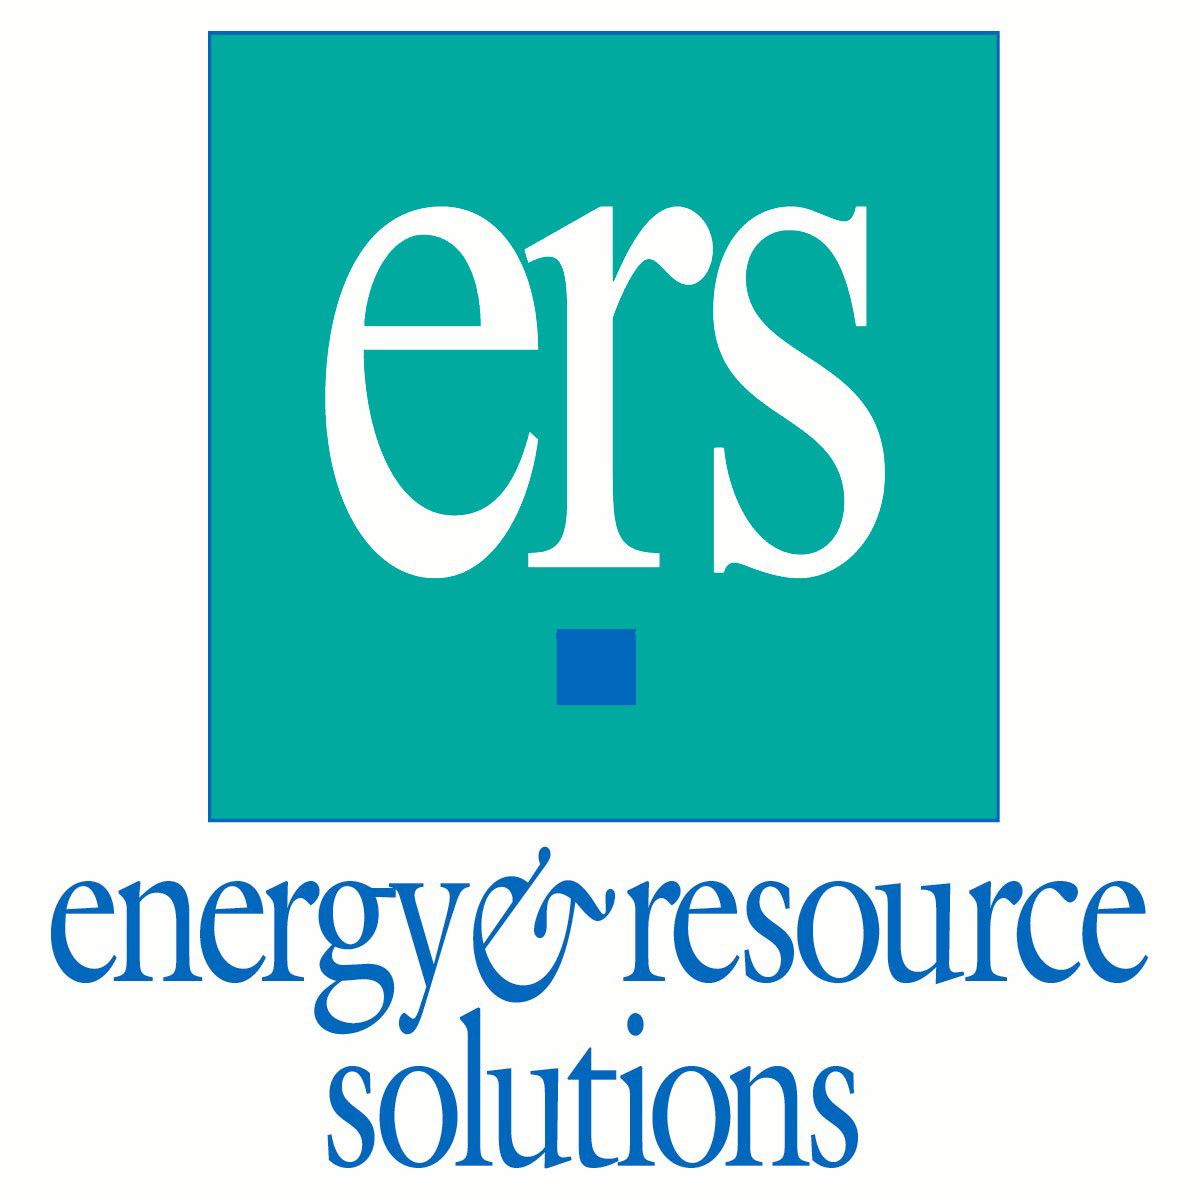 Energy Resource Solutions